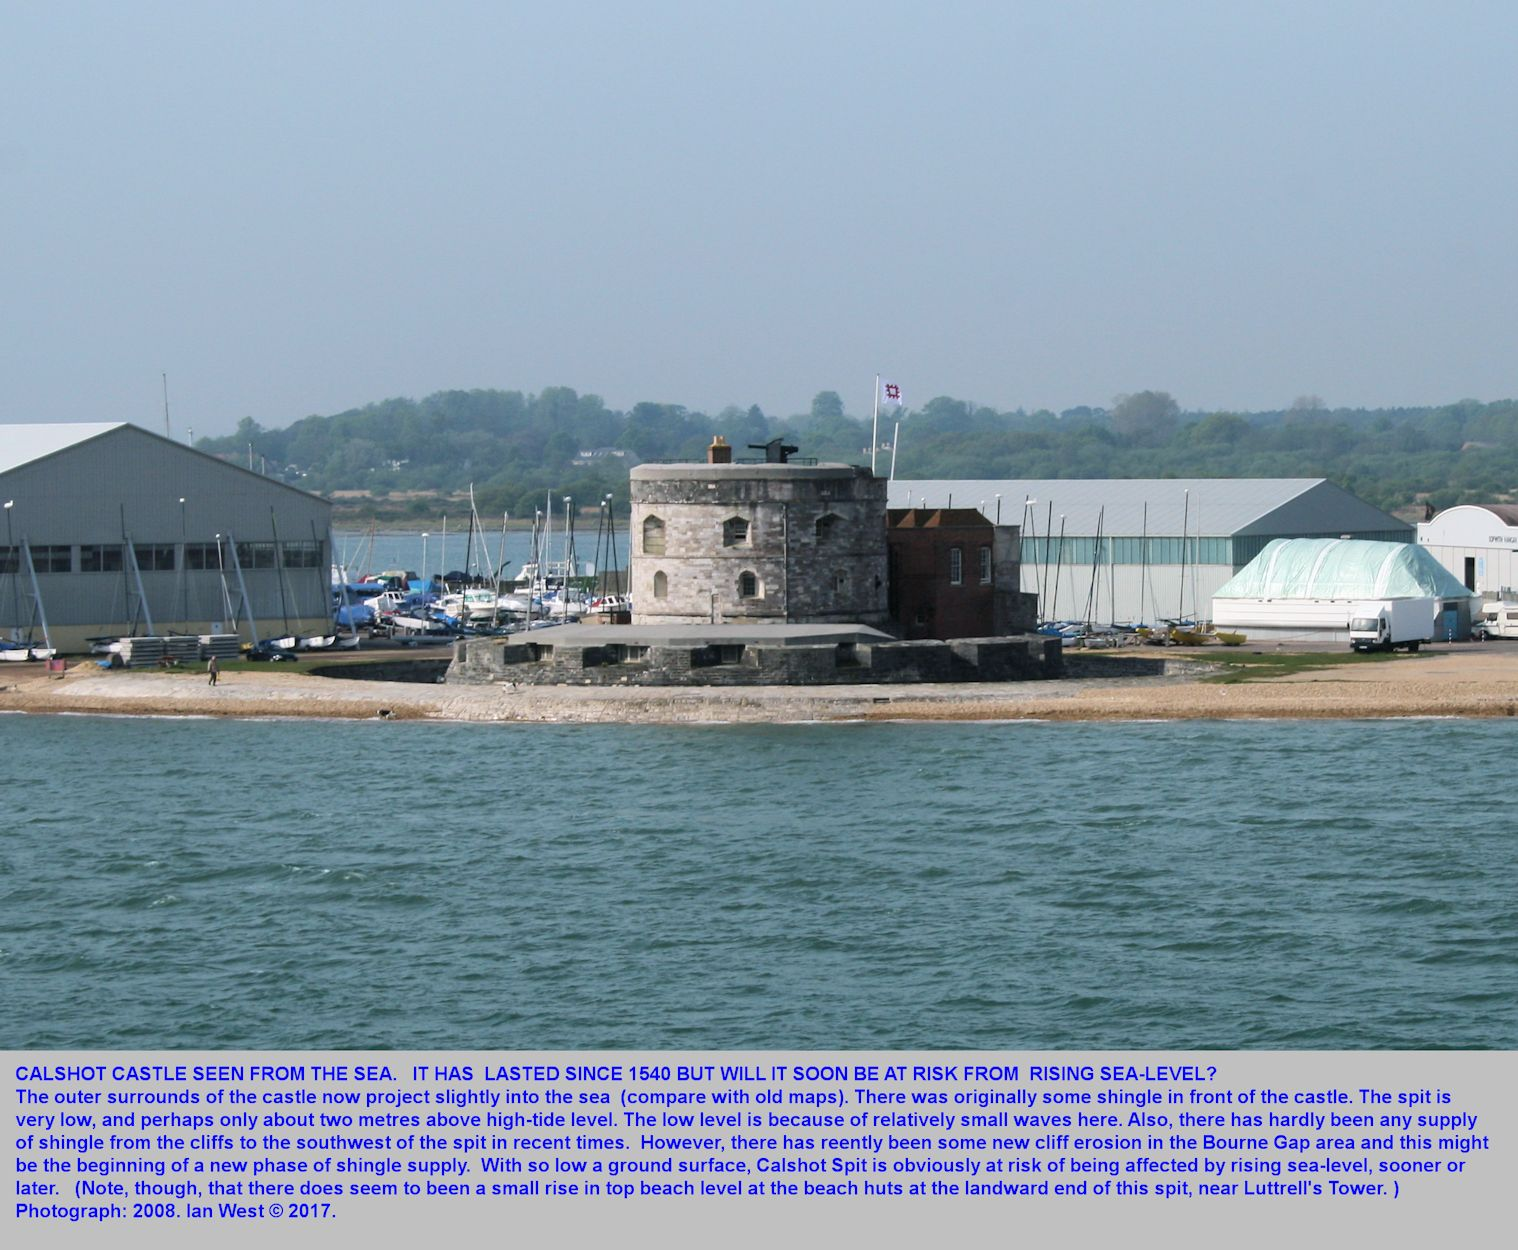 Calshot Castle, Calshot Spit, as seen from the sea. Spit